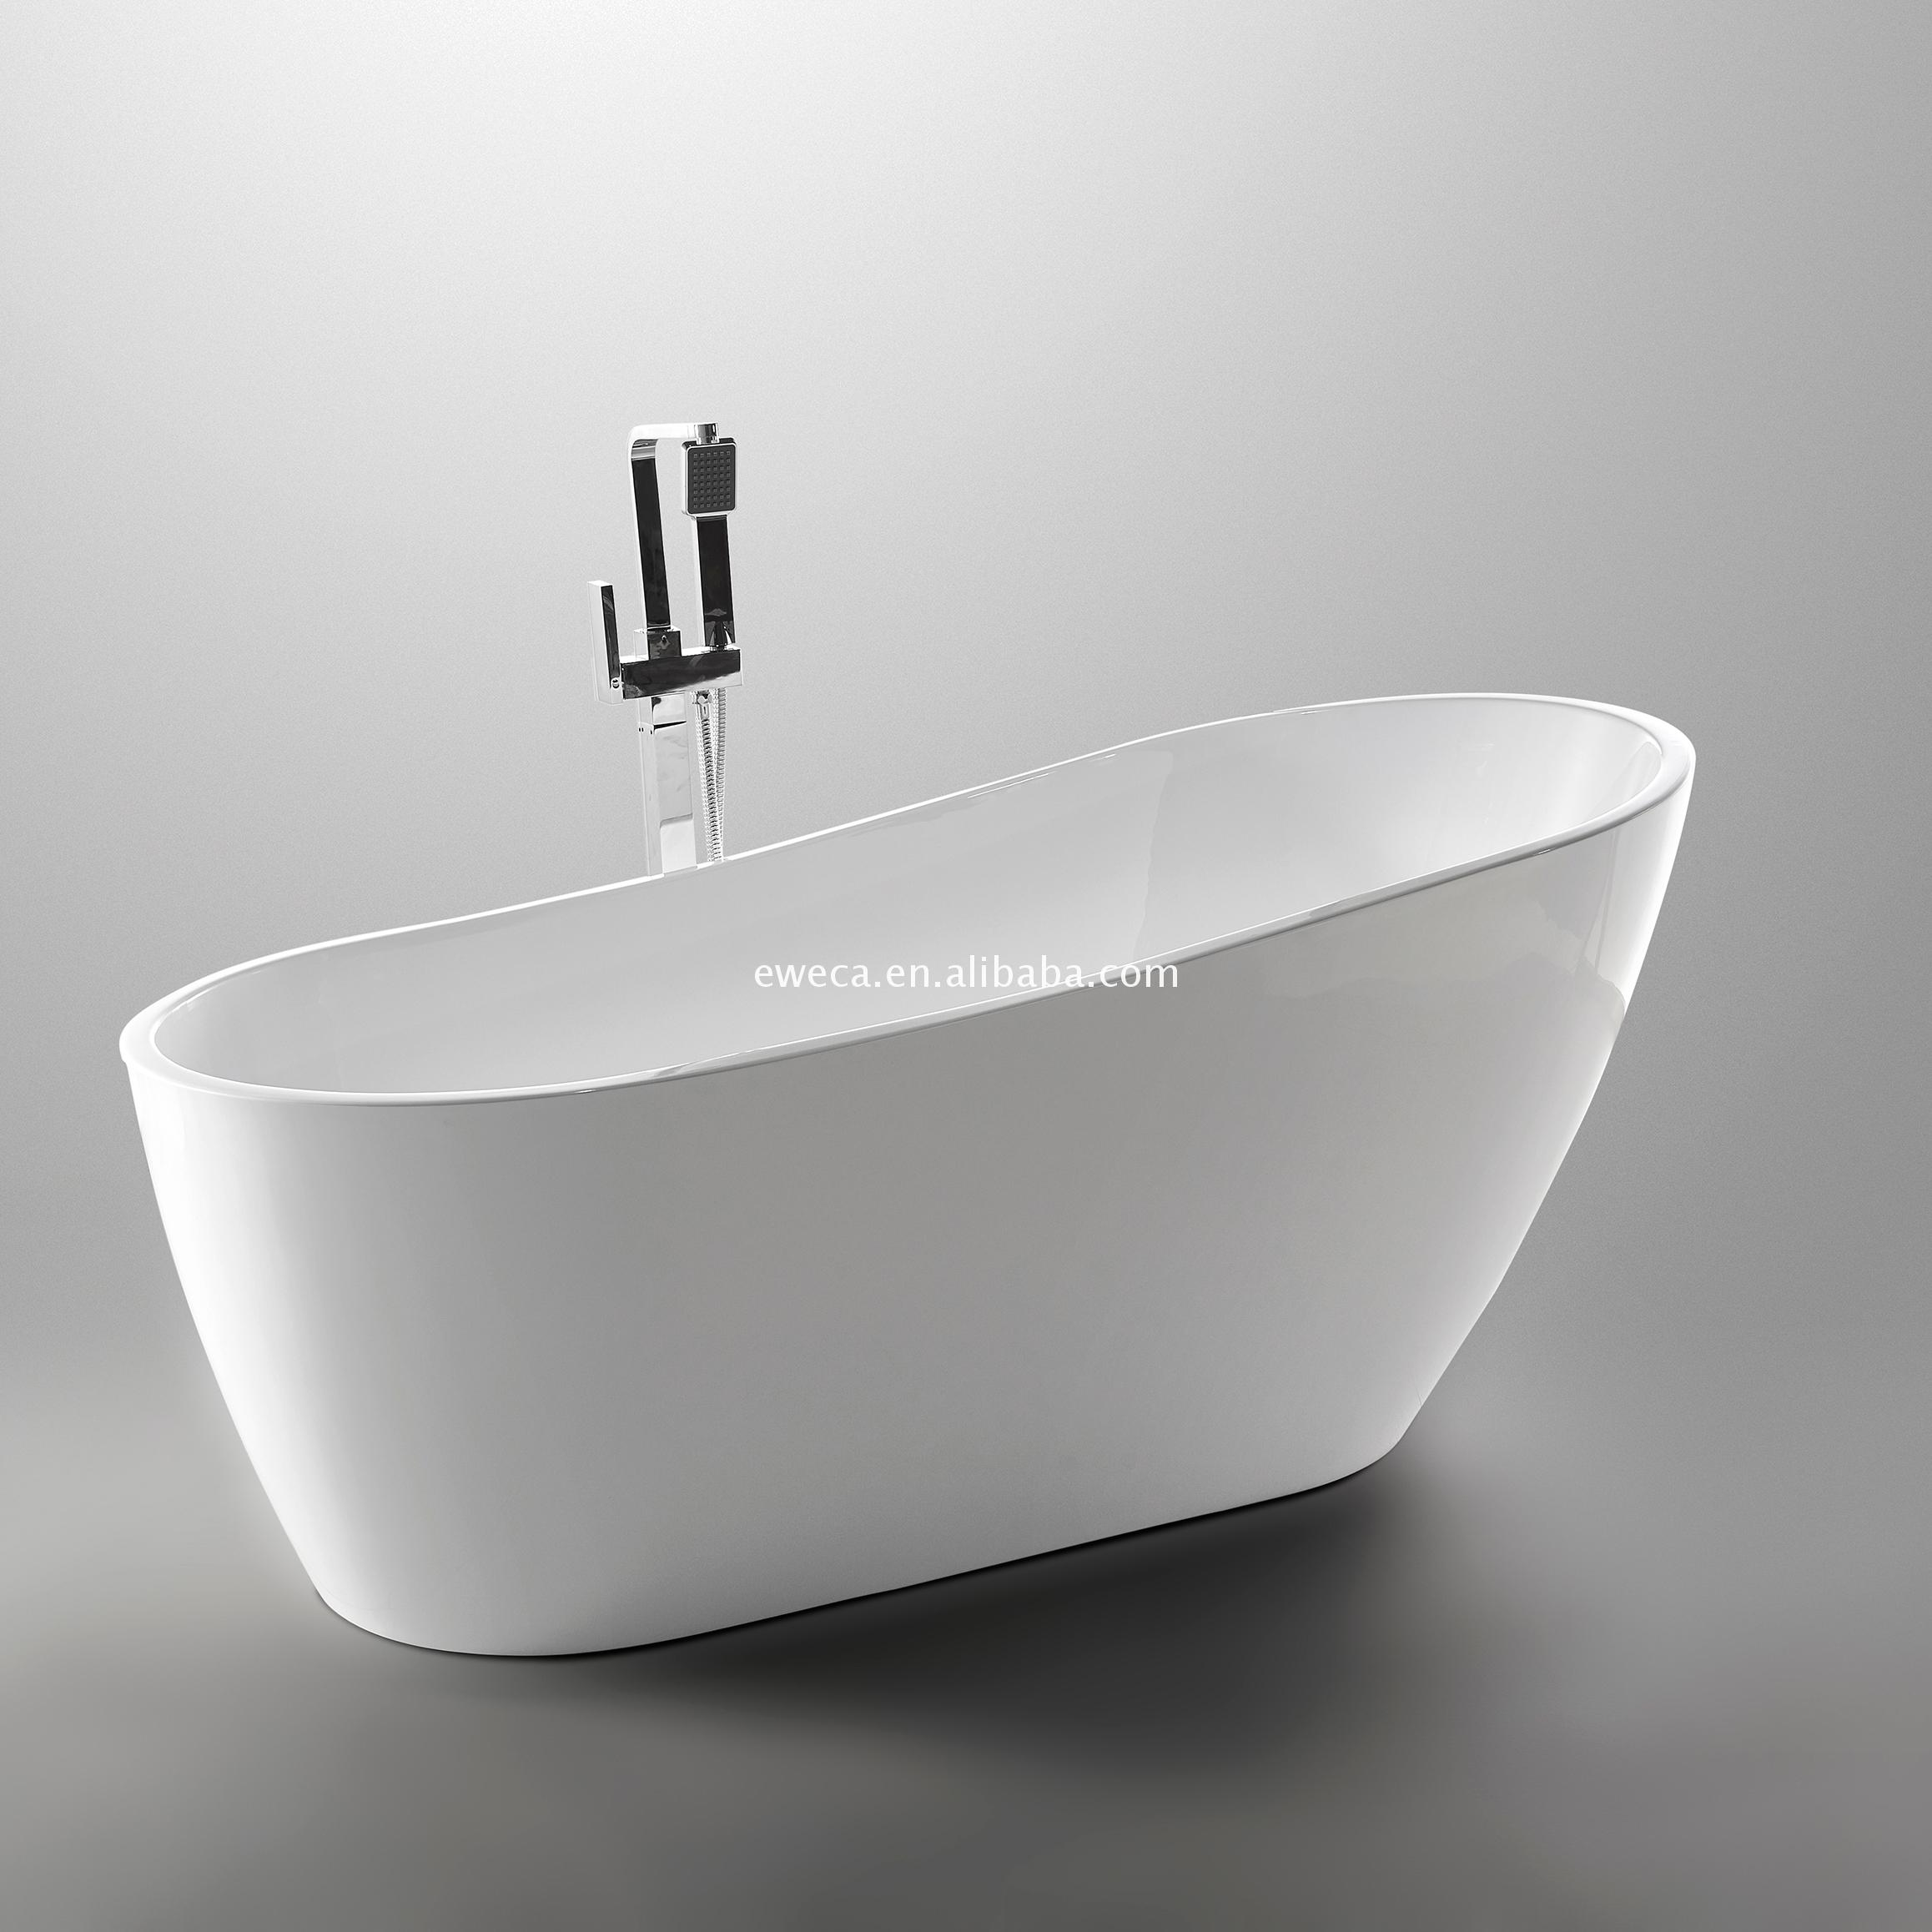 photo x tub of bathtub whirlpool luxury antigua epfbalancestatus bath manufacturers tubs org